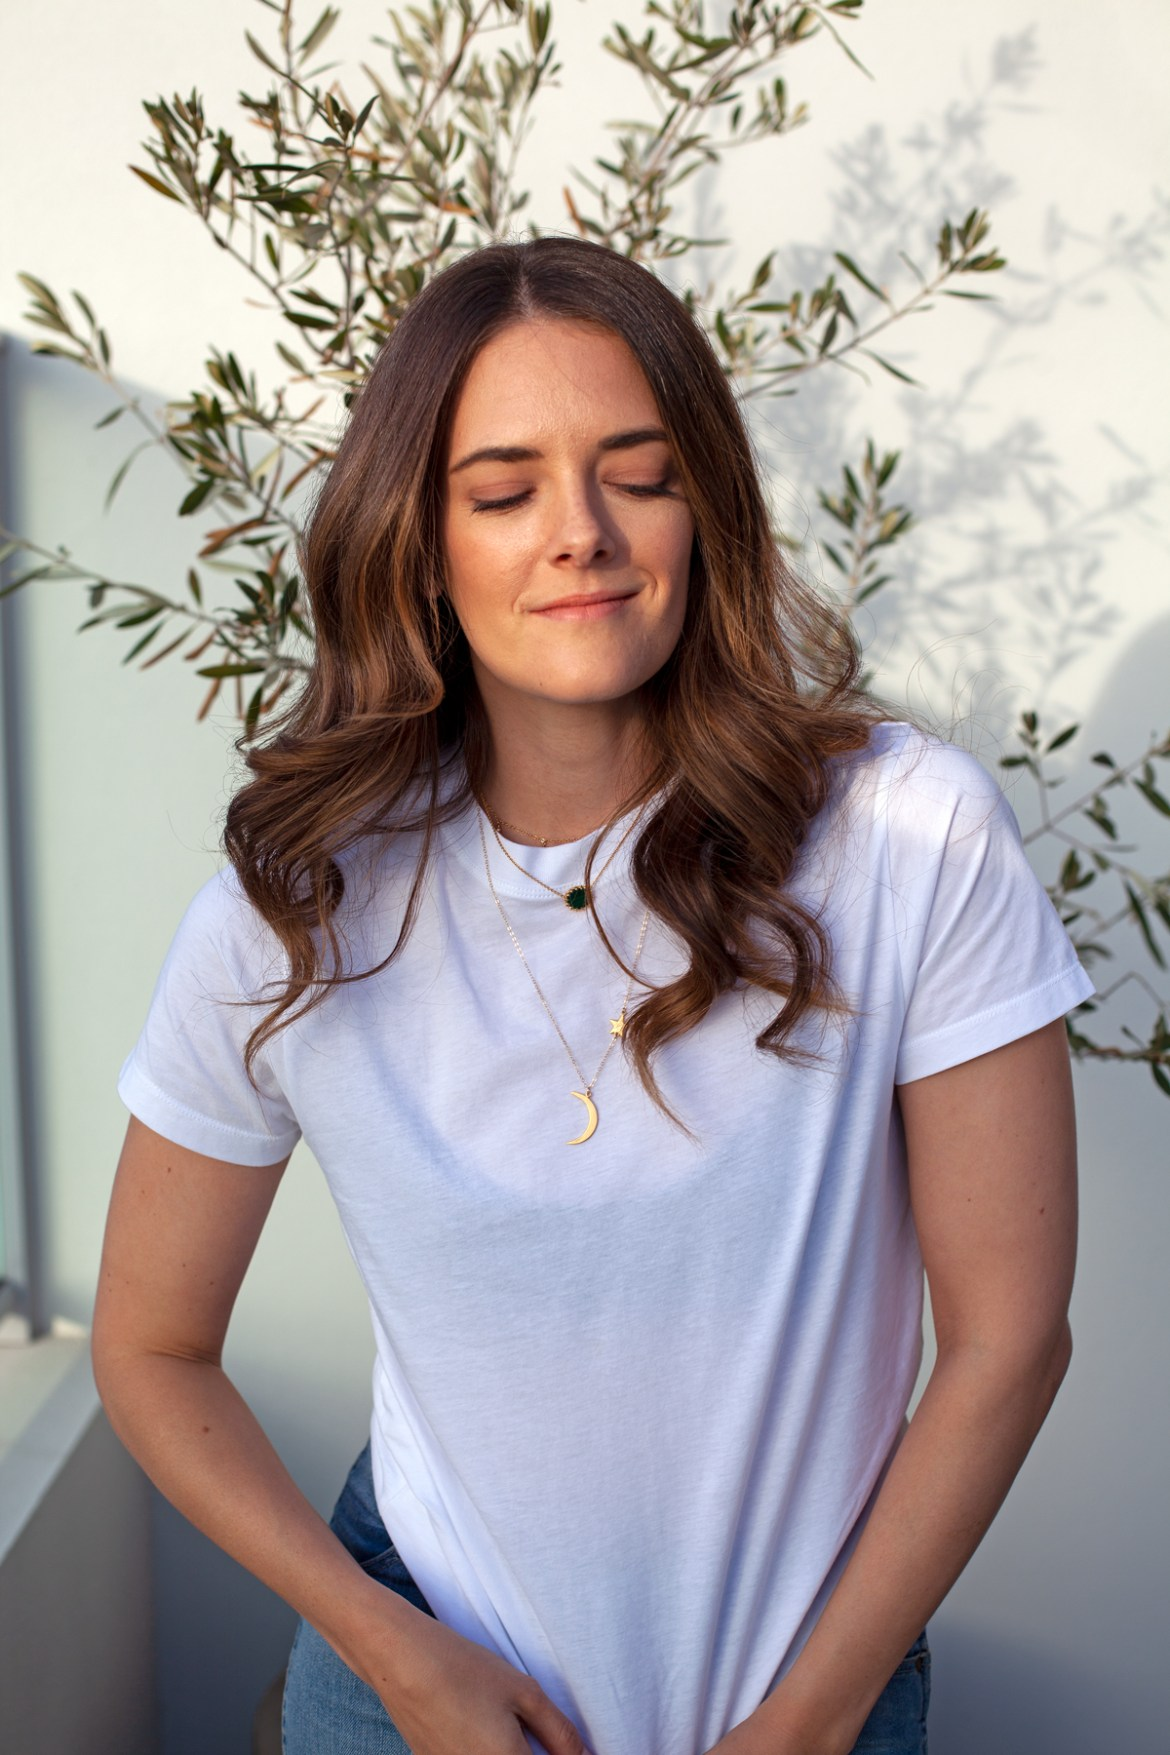 Fashion and lifestyle blogger Jenelle Witty from Inspiring Wit in Jac + Jack white tee